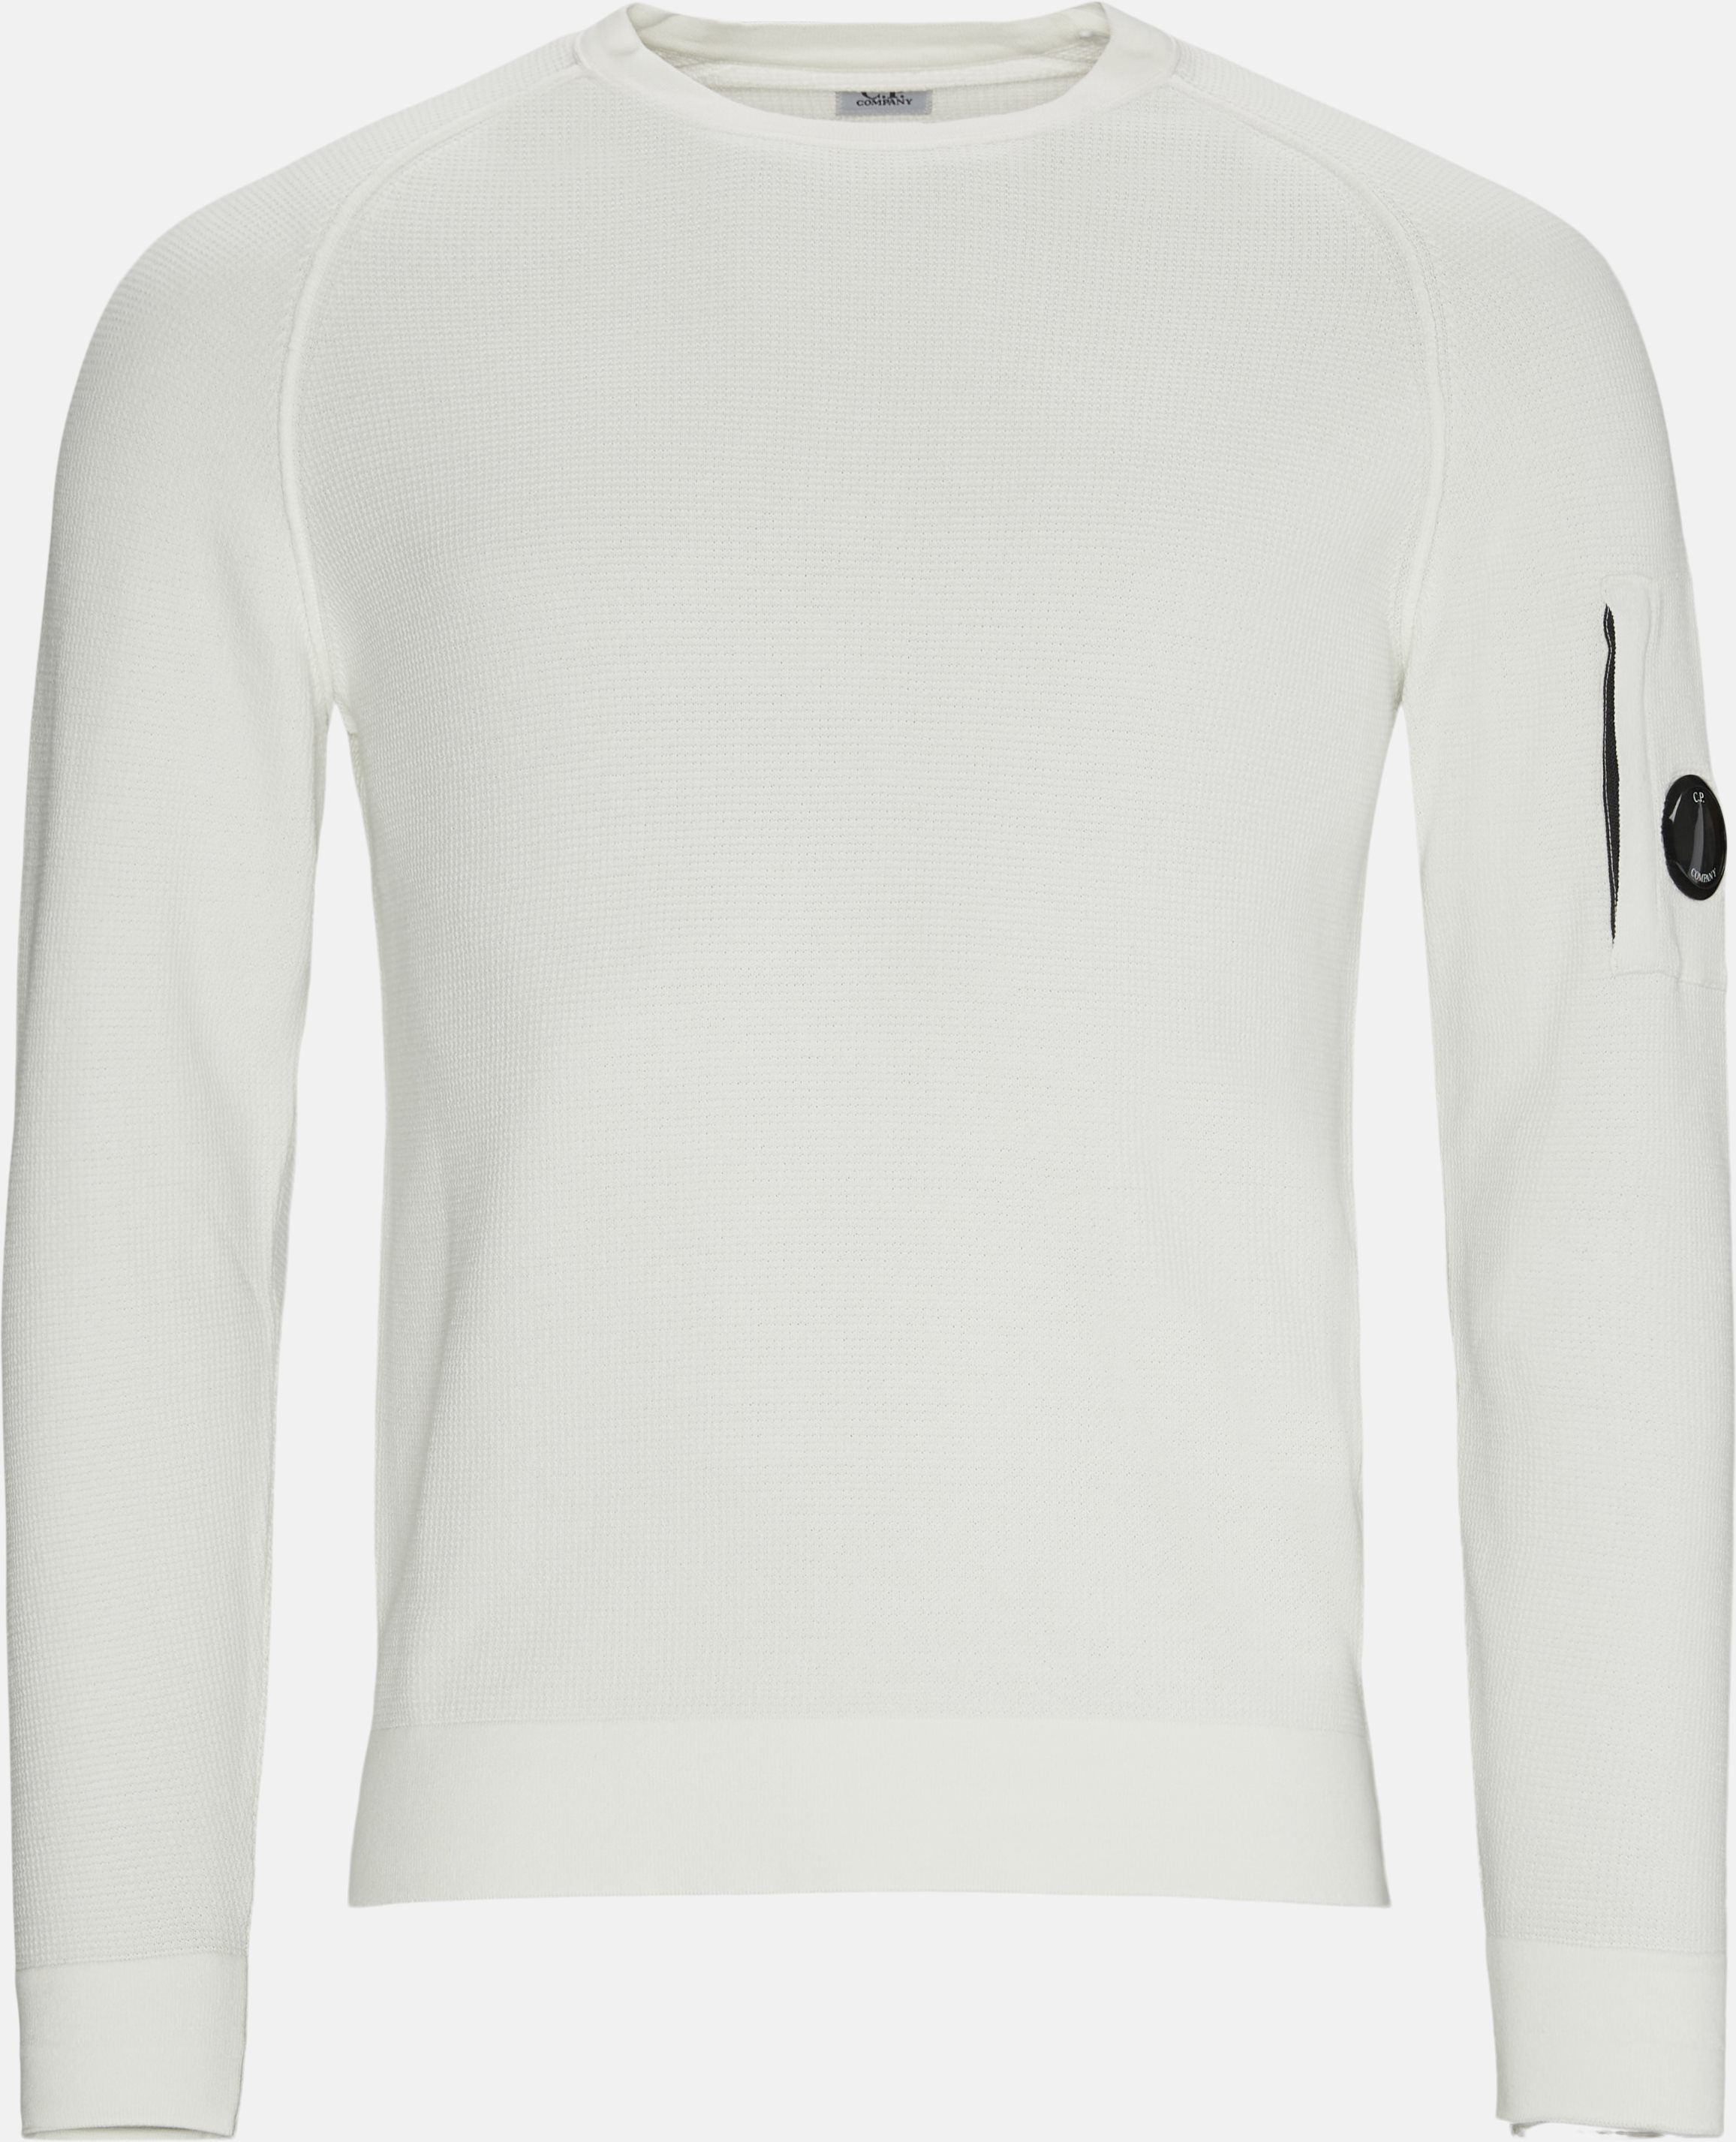 Waffle Knitted Lens Logo Crewneck - Knitwear - Regular fit - White